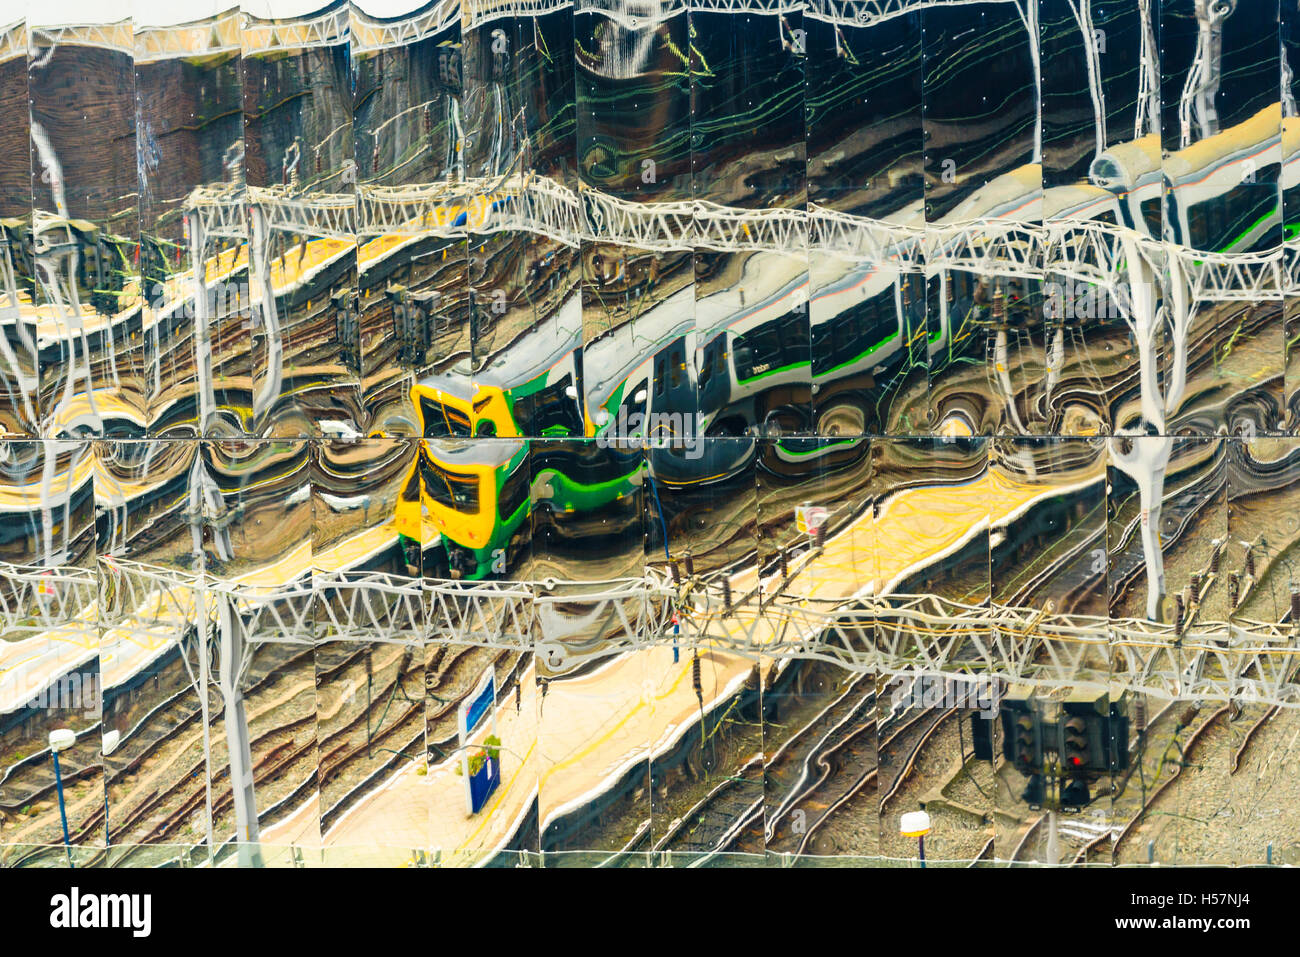 London Midland train reflected in the mirror facade of Birmingham New Street Station - Stock Image